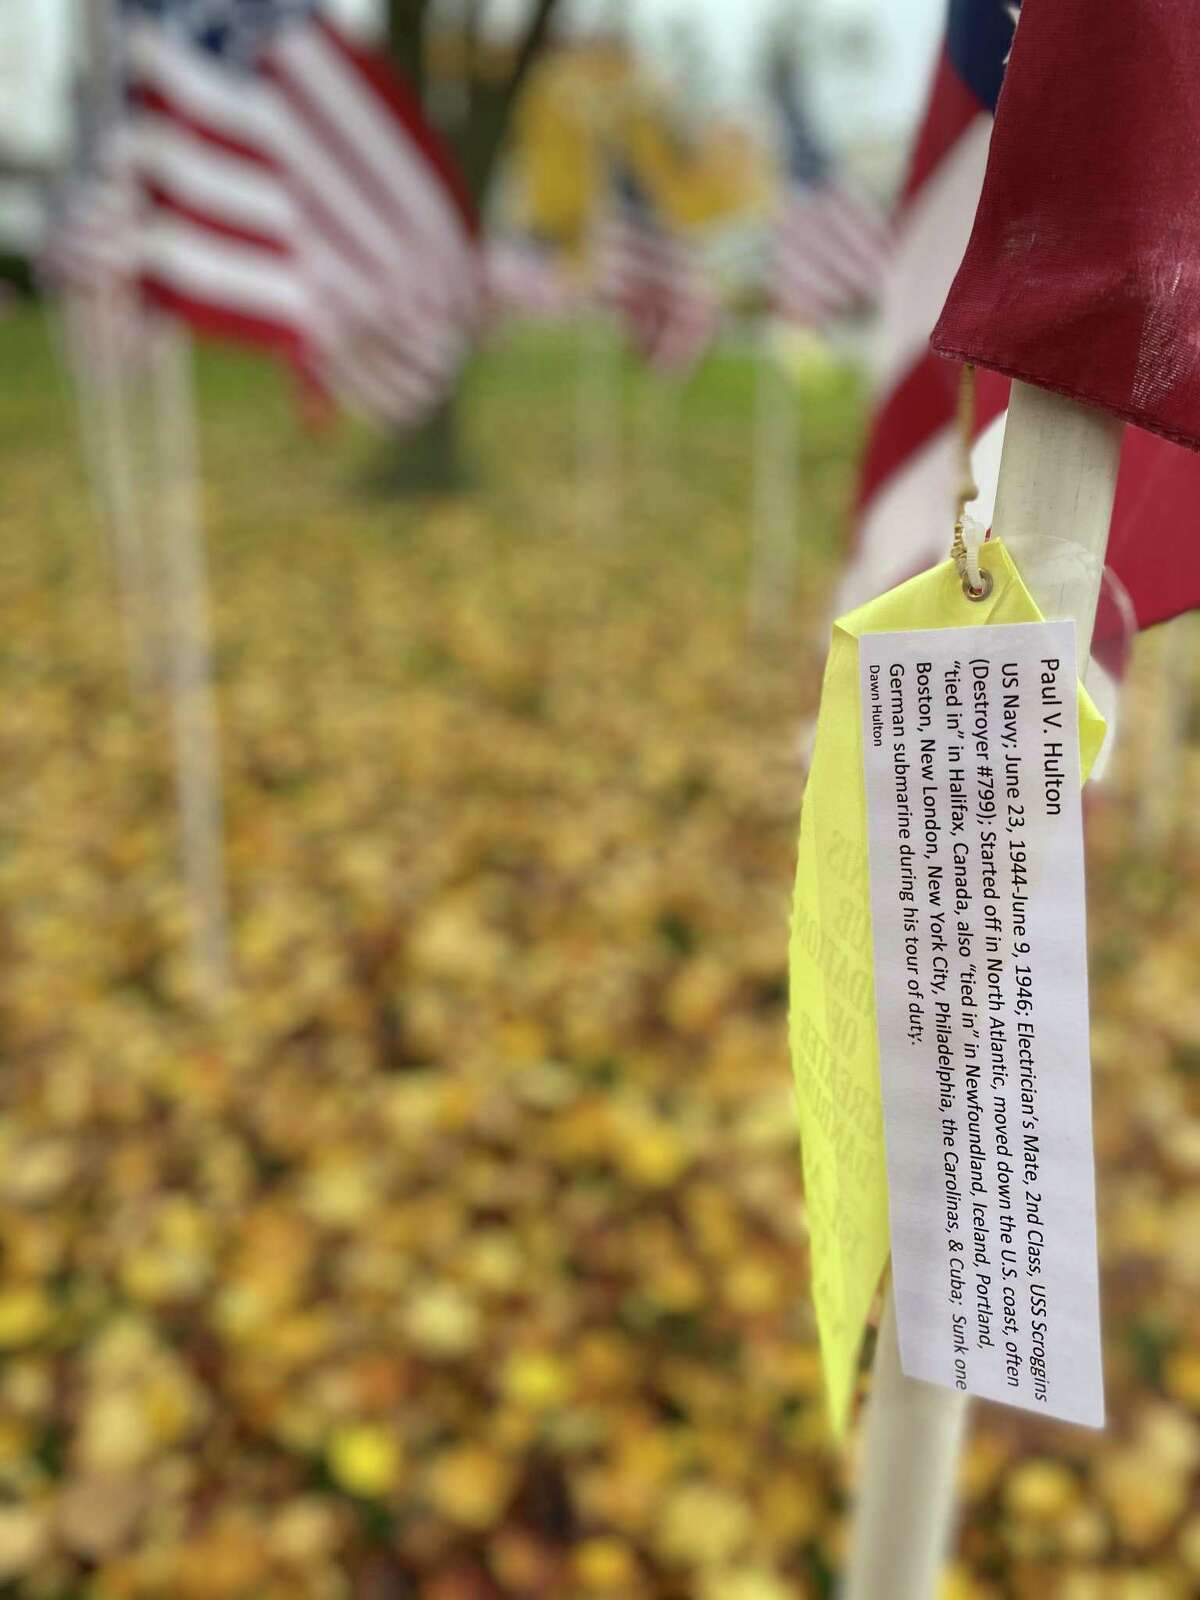 After the ceremony, some residents visited the Flags of Valor display, put on by the Kiwanis Club of Danbury, on the lower lawn of the New Milford Historical Society near the top of the Green. Flags are tagged with the names of veterans.